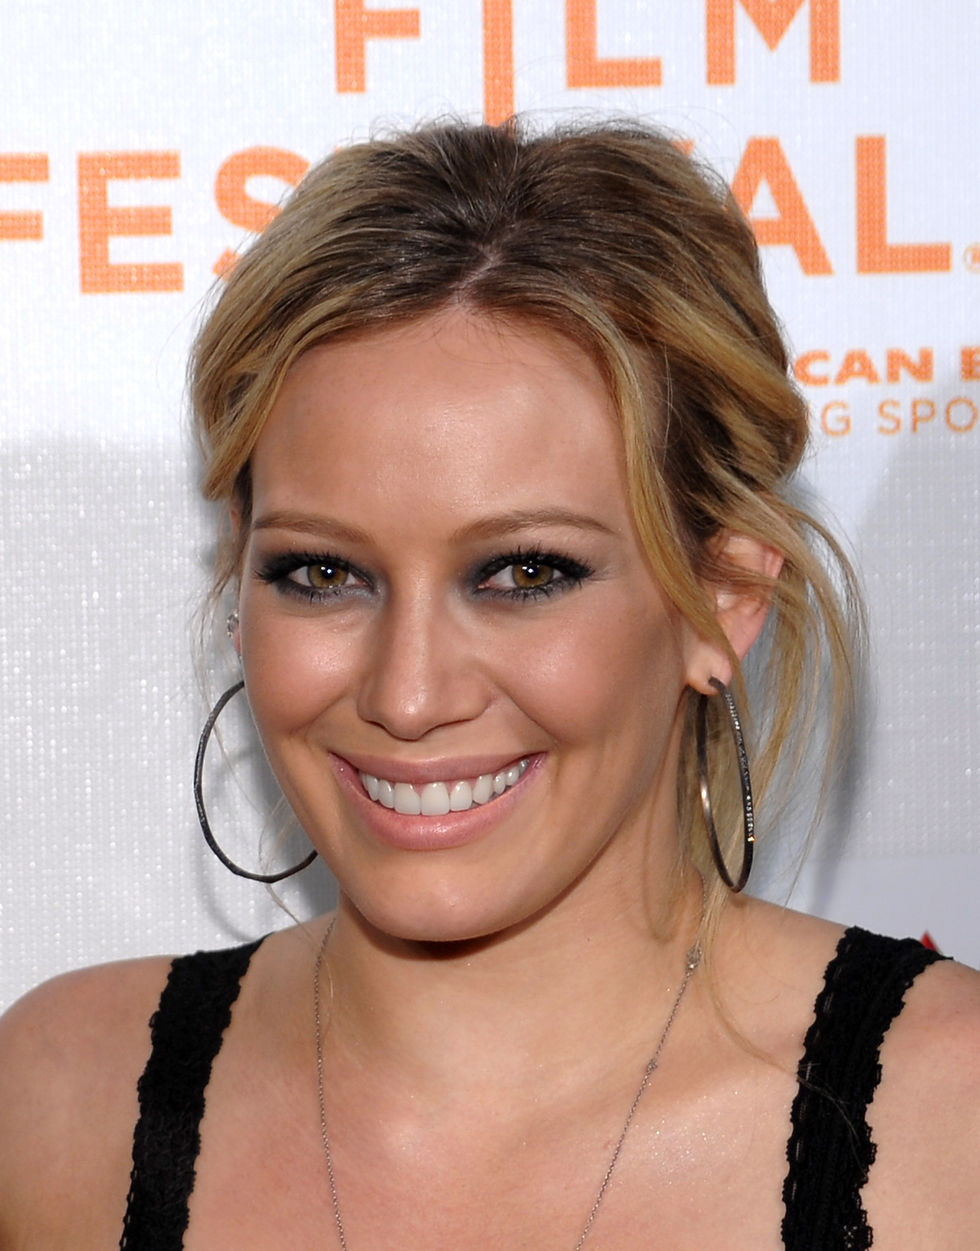 hilary-duff-stay-cool-screening-in-new-york-01